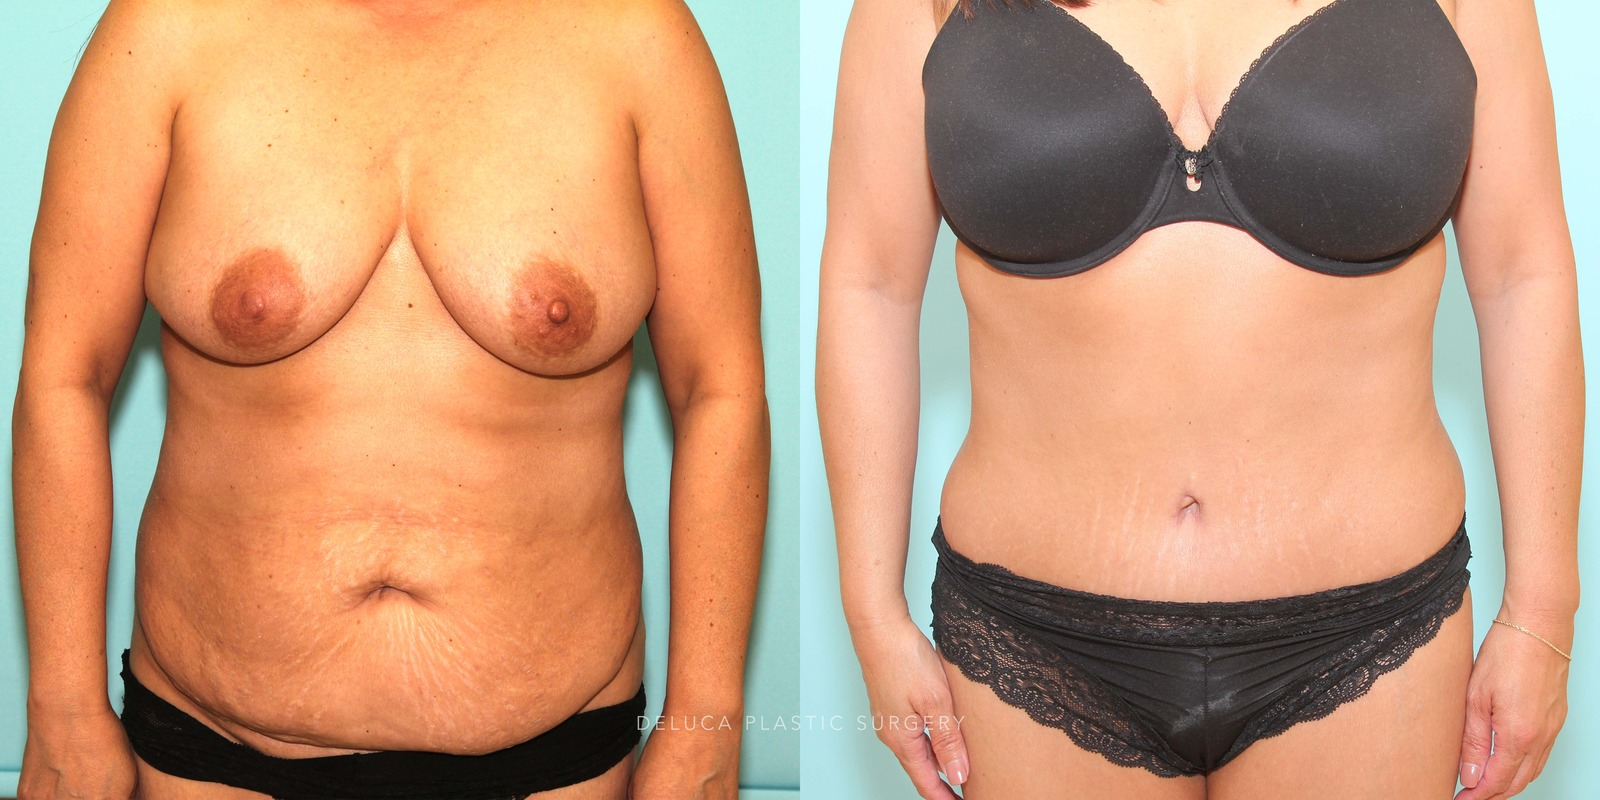 48 y/o Tummy Tuck and Liposuction Abdomen